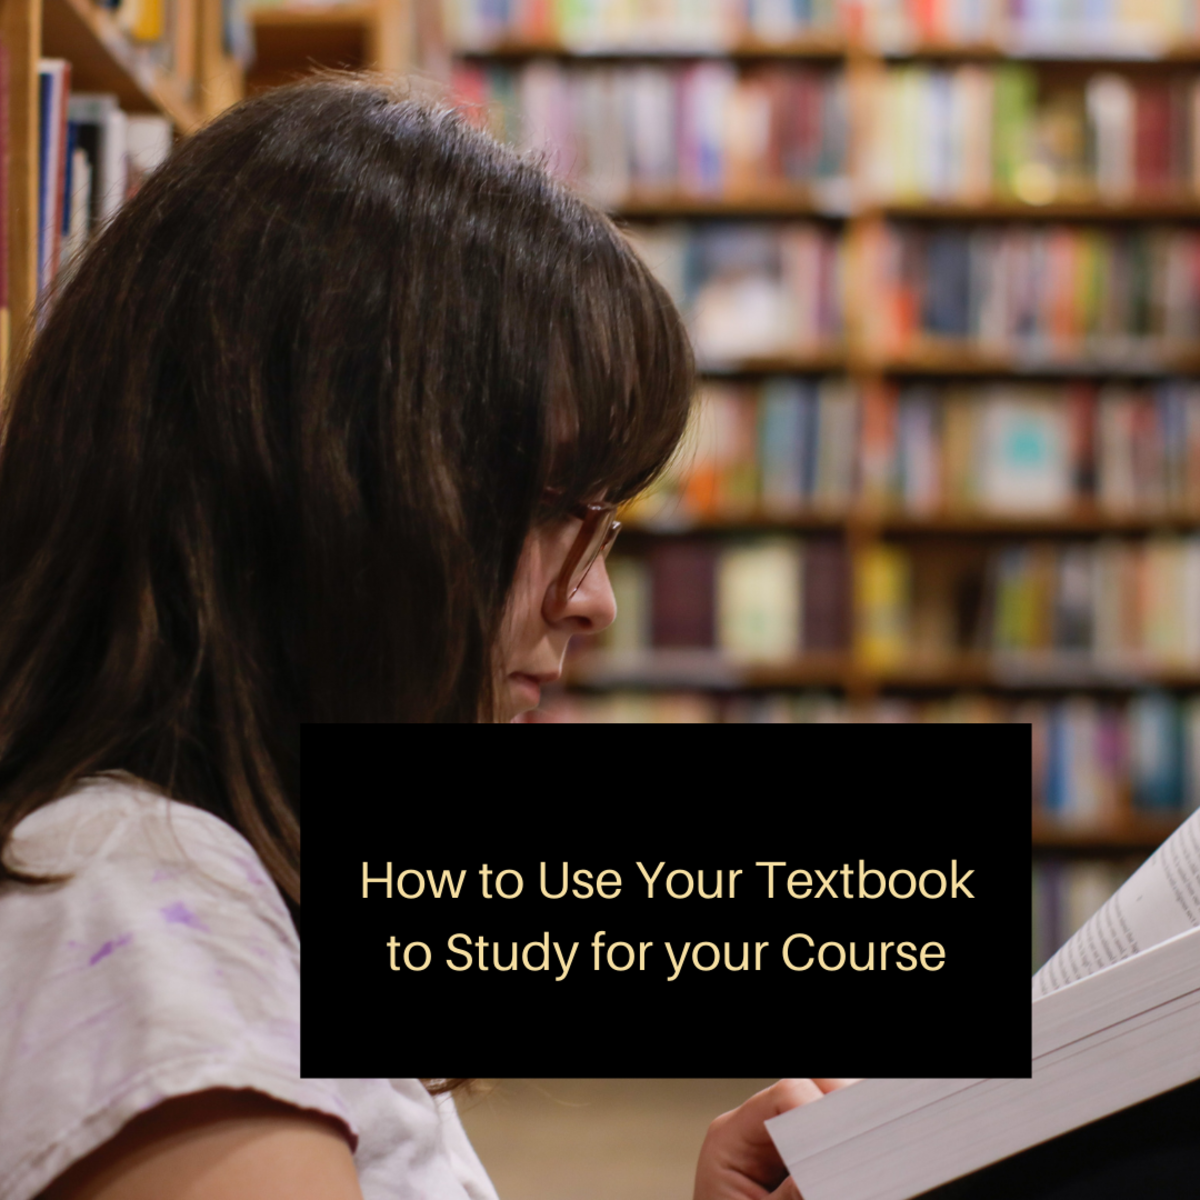 How to Use Your Textbook to Study for your Course